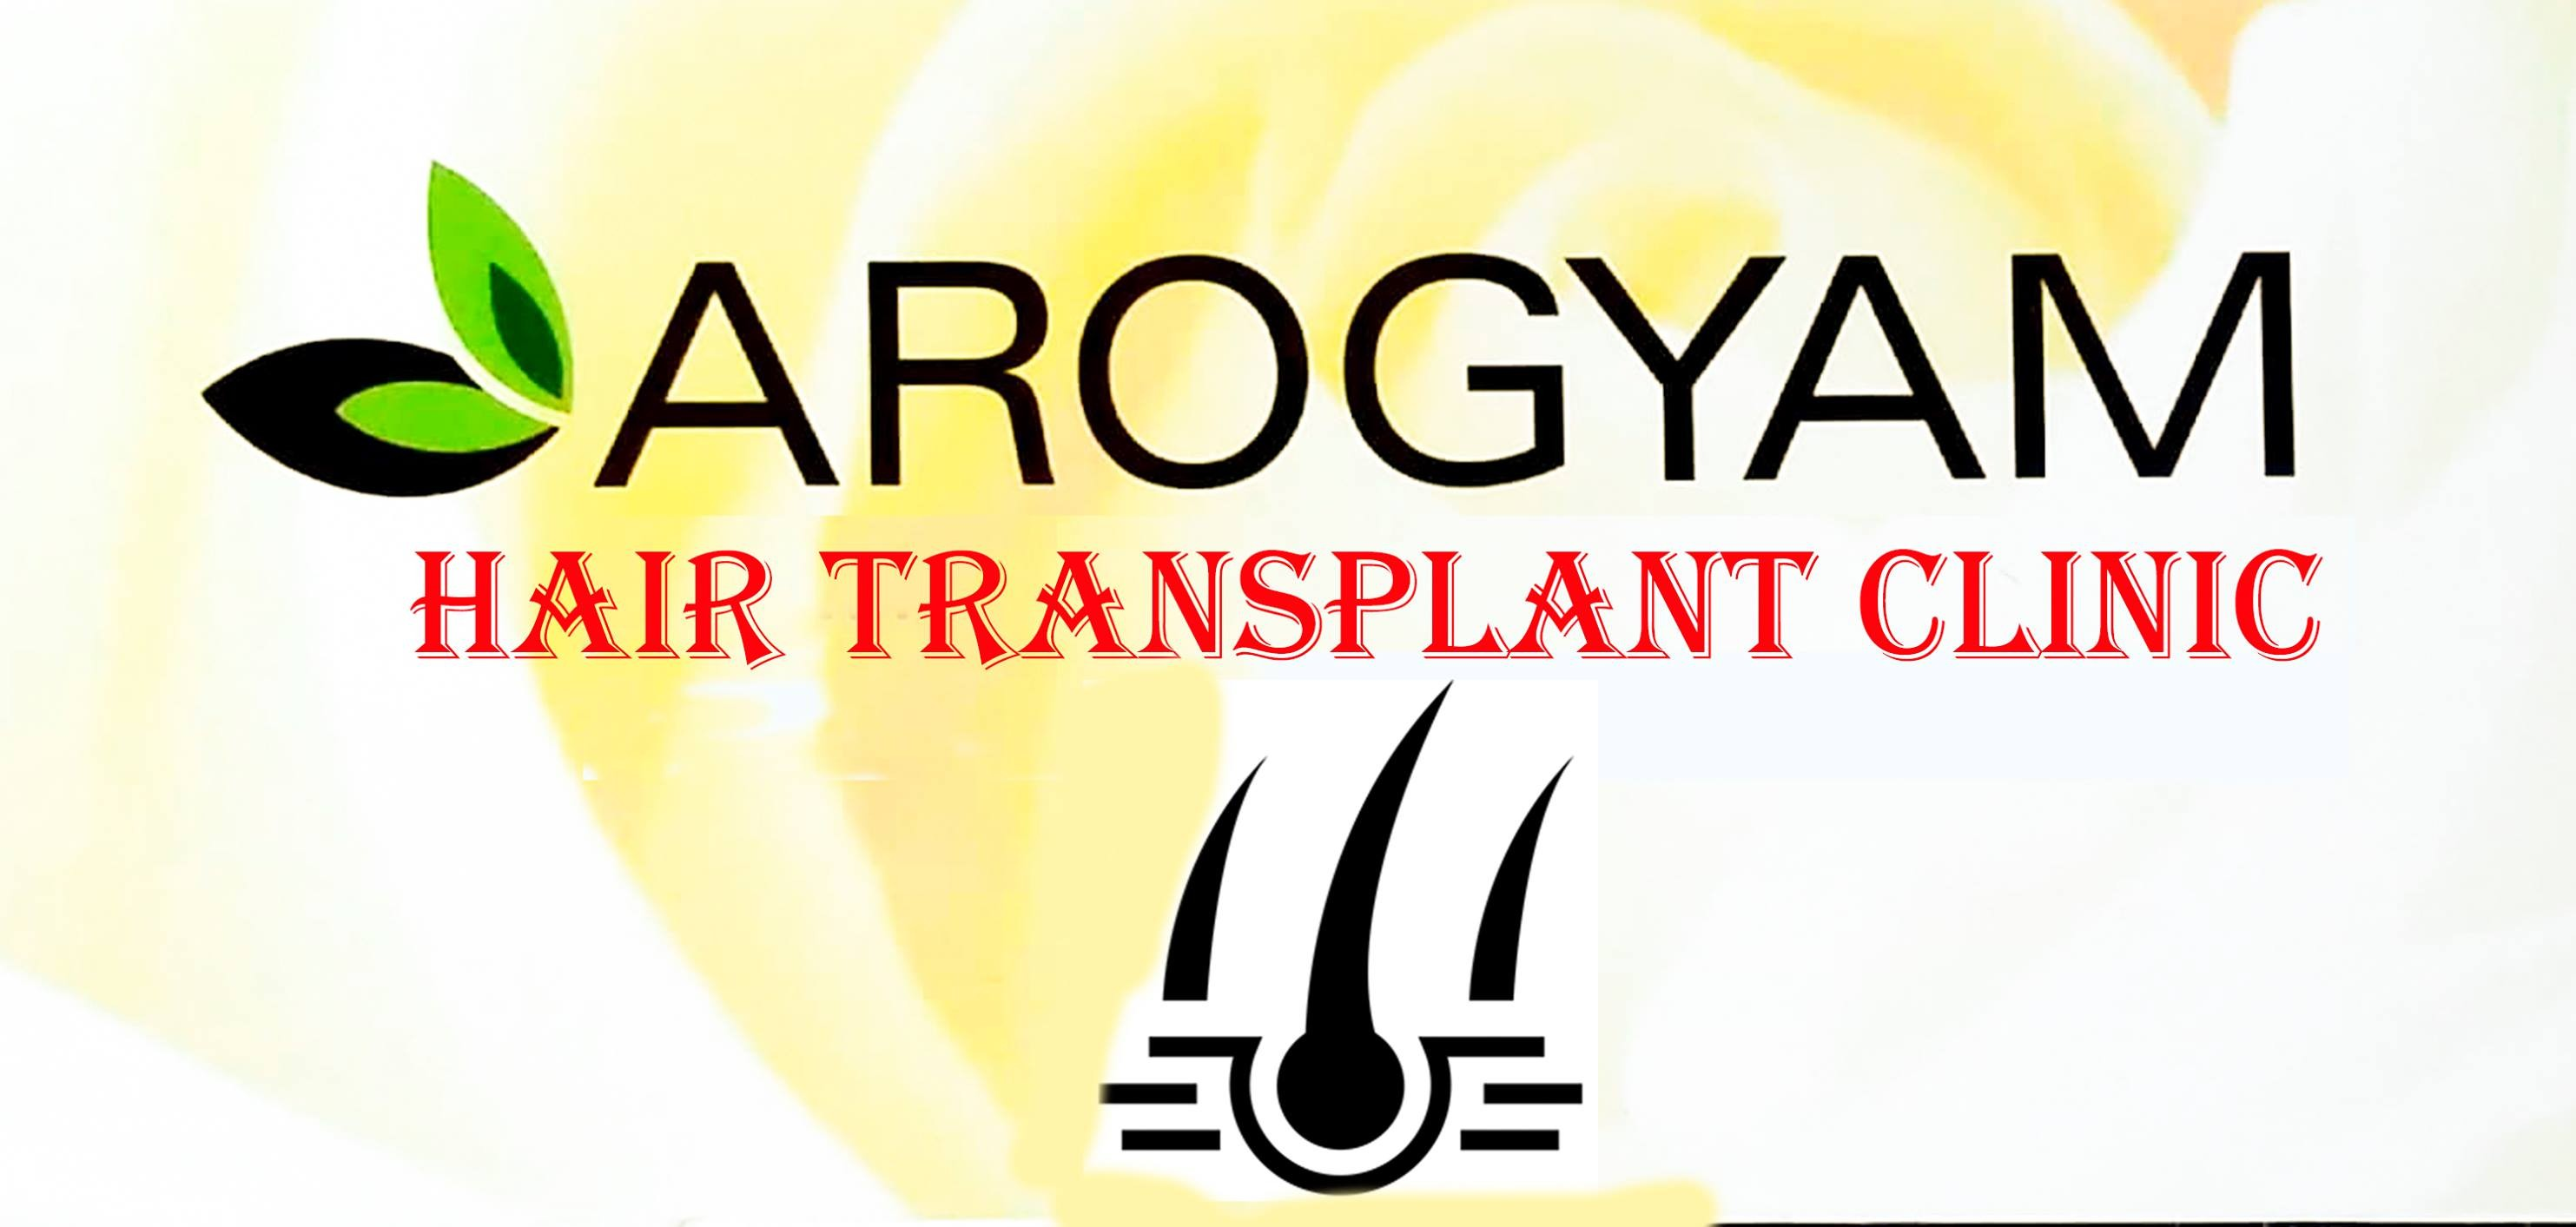 Downtown Arogyam Hair Transplant Clinic